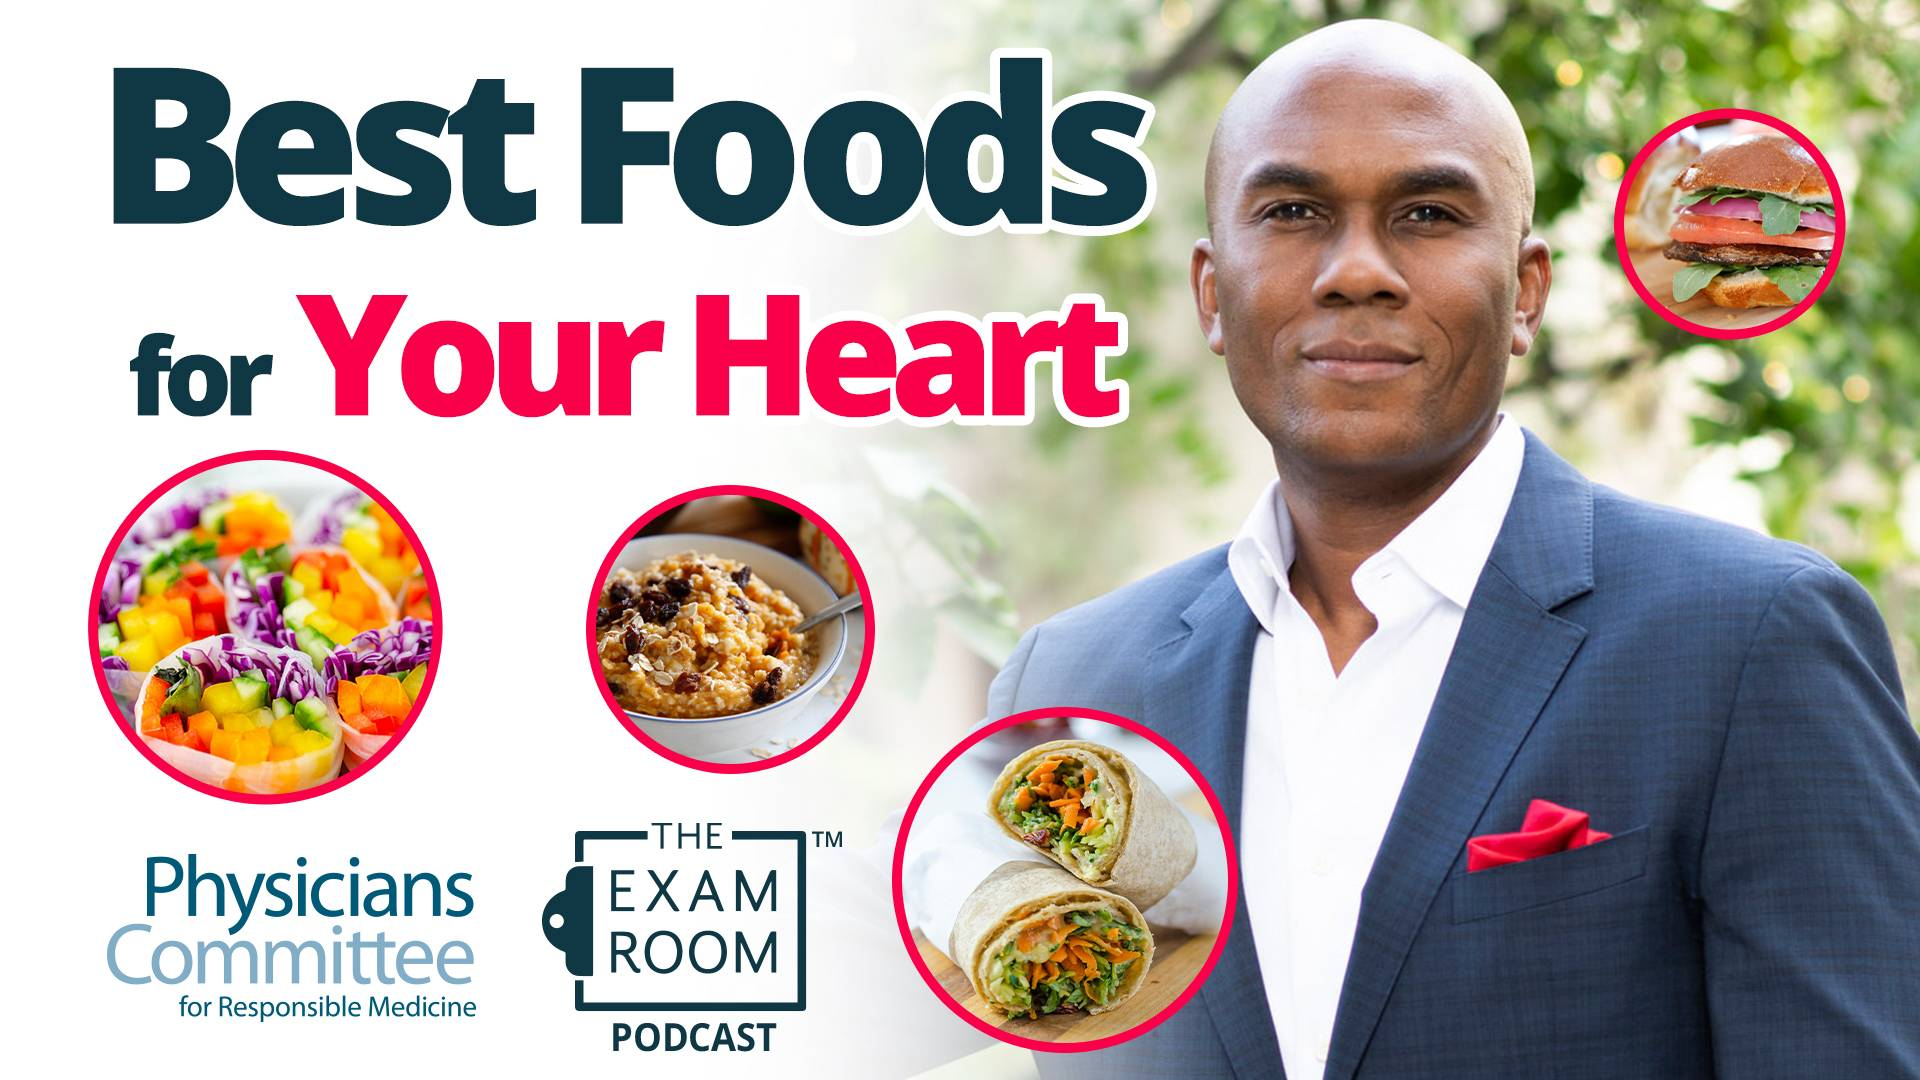 Best Foods for Your Heart